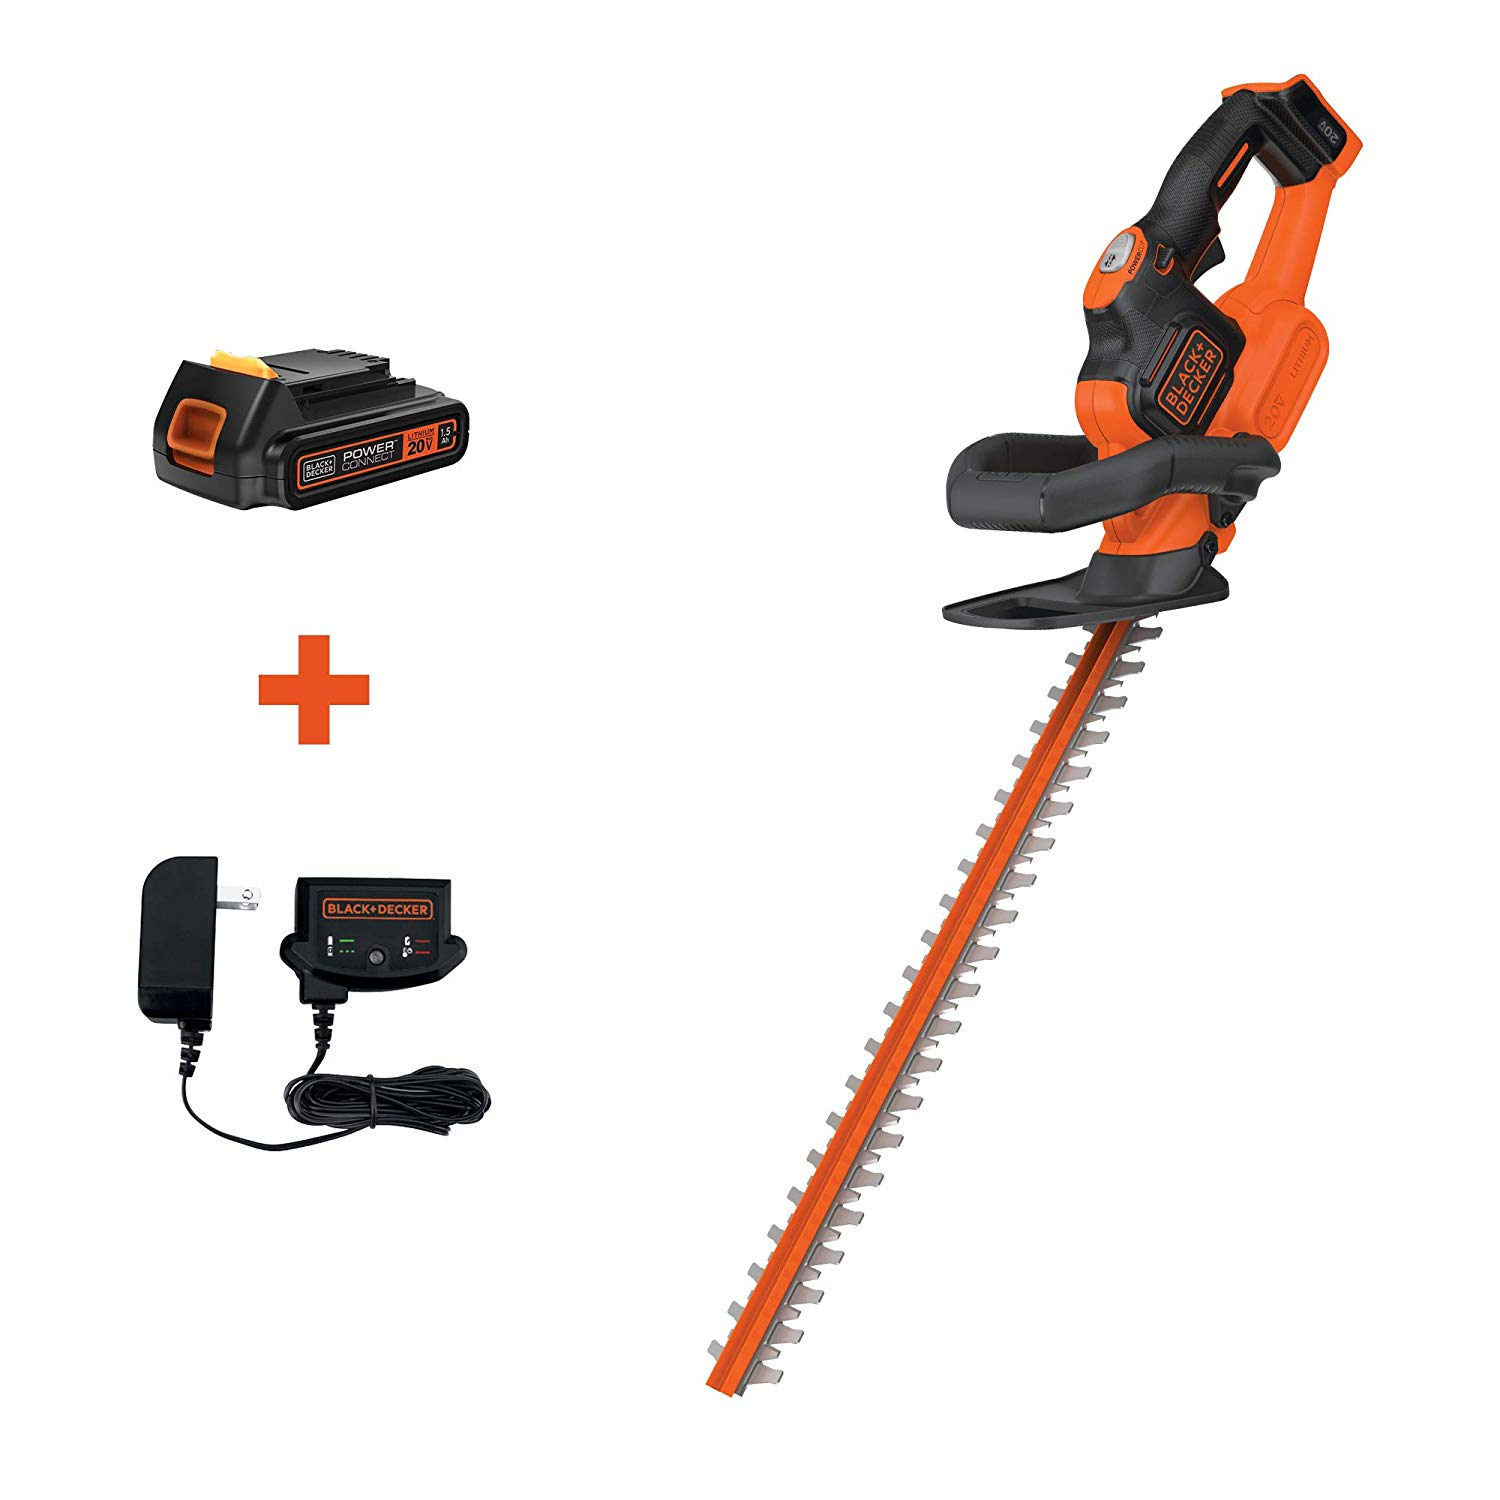 LHT321FF Max Cordless Hedge Trimmer by Black Decker